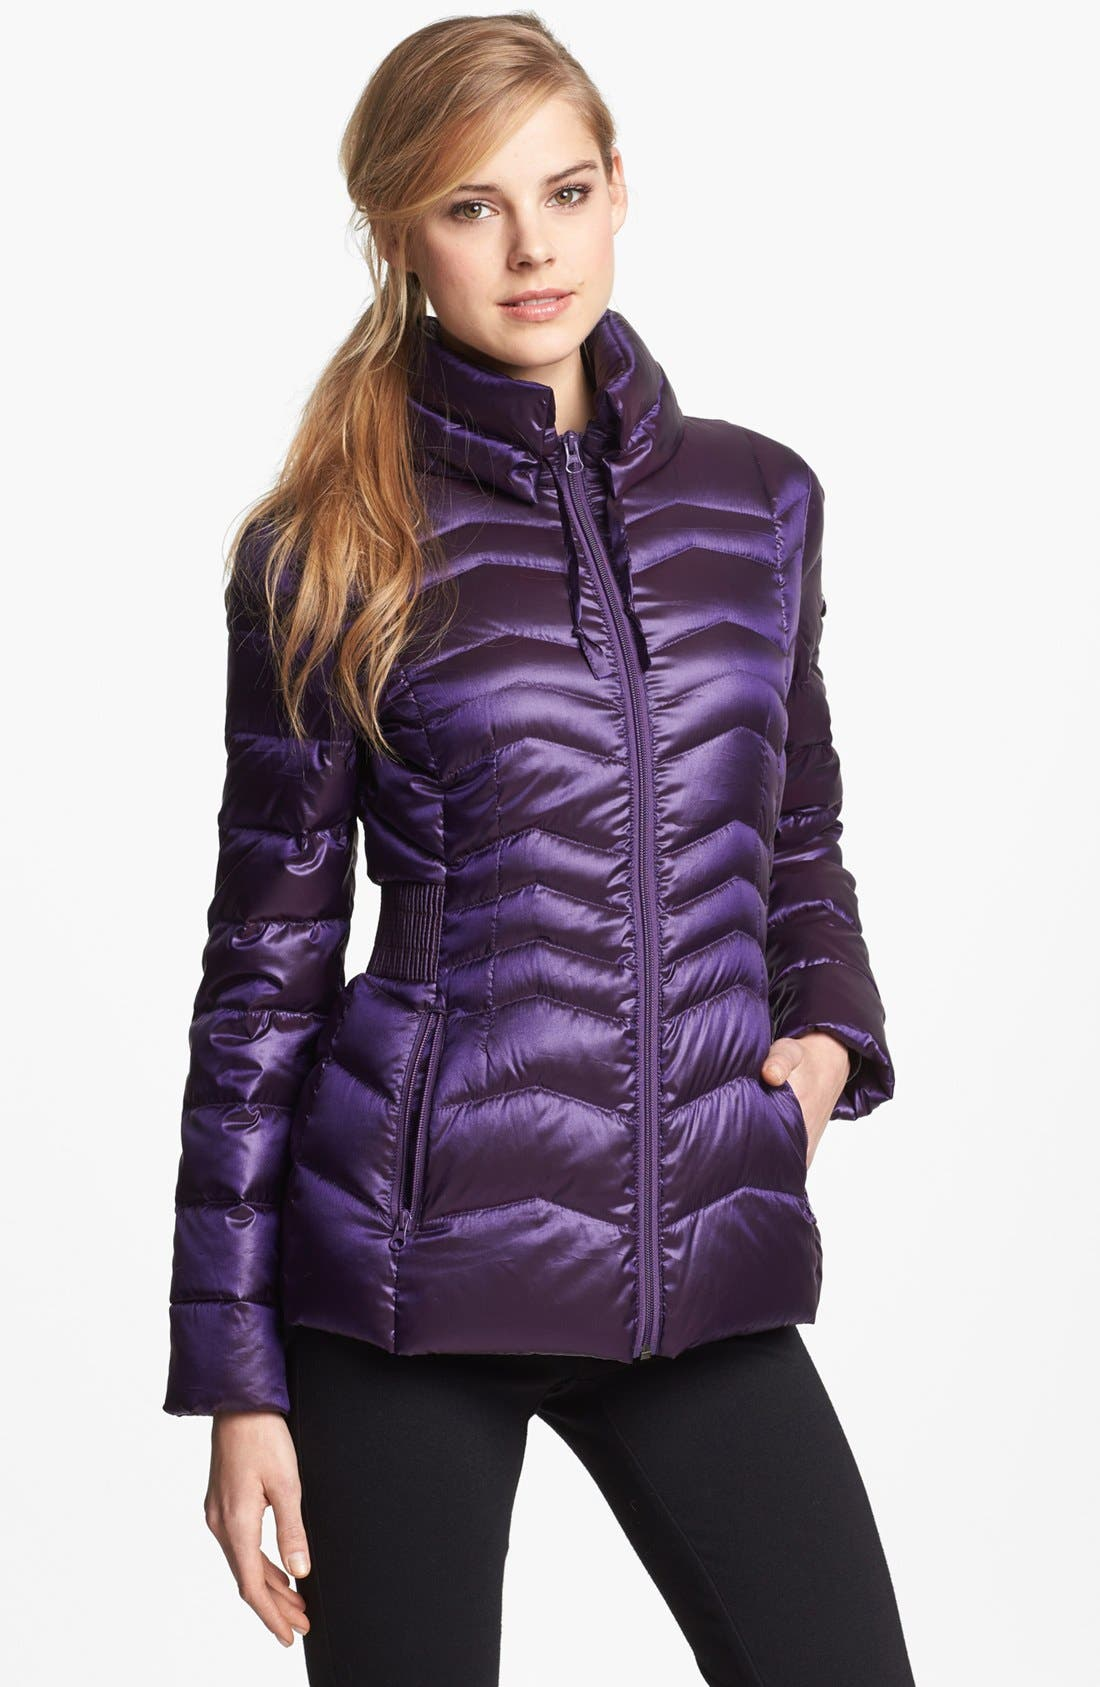 Shop for Kids' Down Jackets at REI - FREE SHIPPING With $50 minimum purchase. Top quality, great selection and expert advice you can trust. % Satisfaction Guarantee. Skip to main content Add Andes Down Jacket - Girls' to Compare. 2 colors available. Helly Hansen.